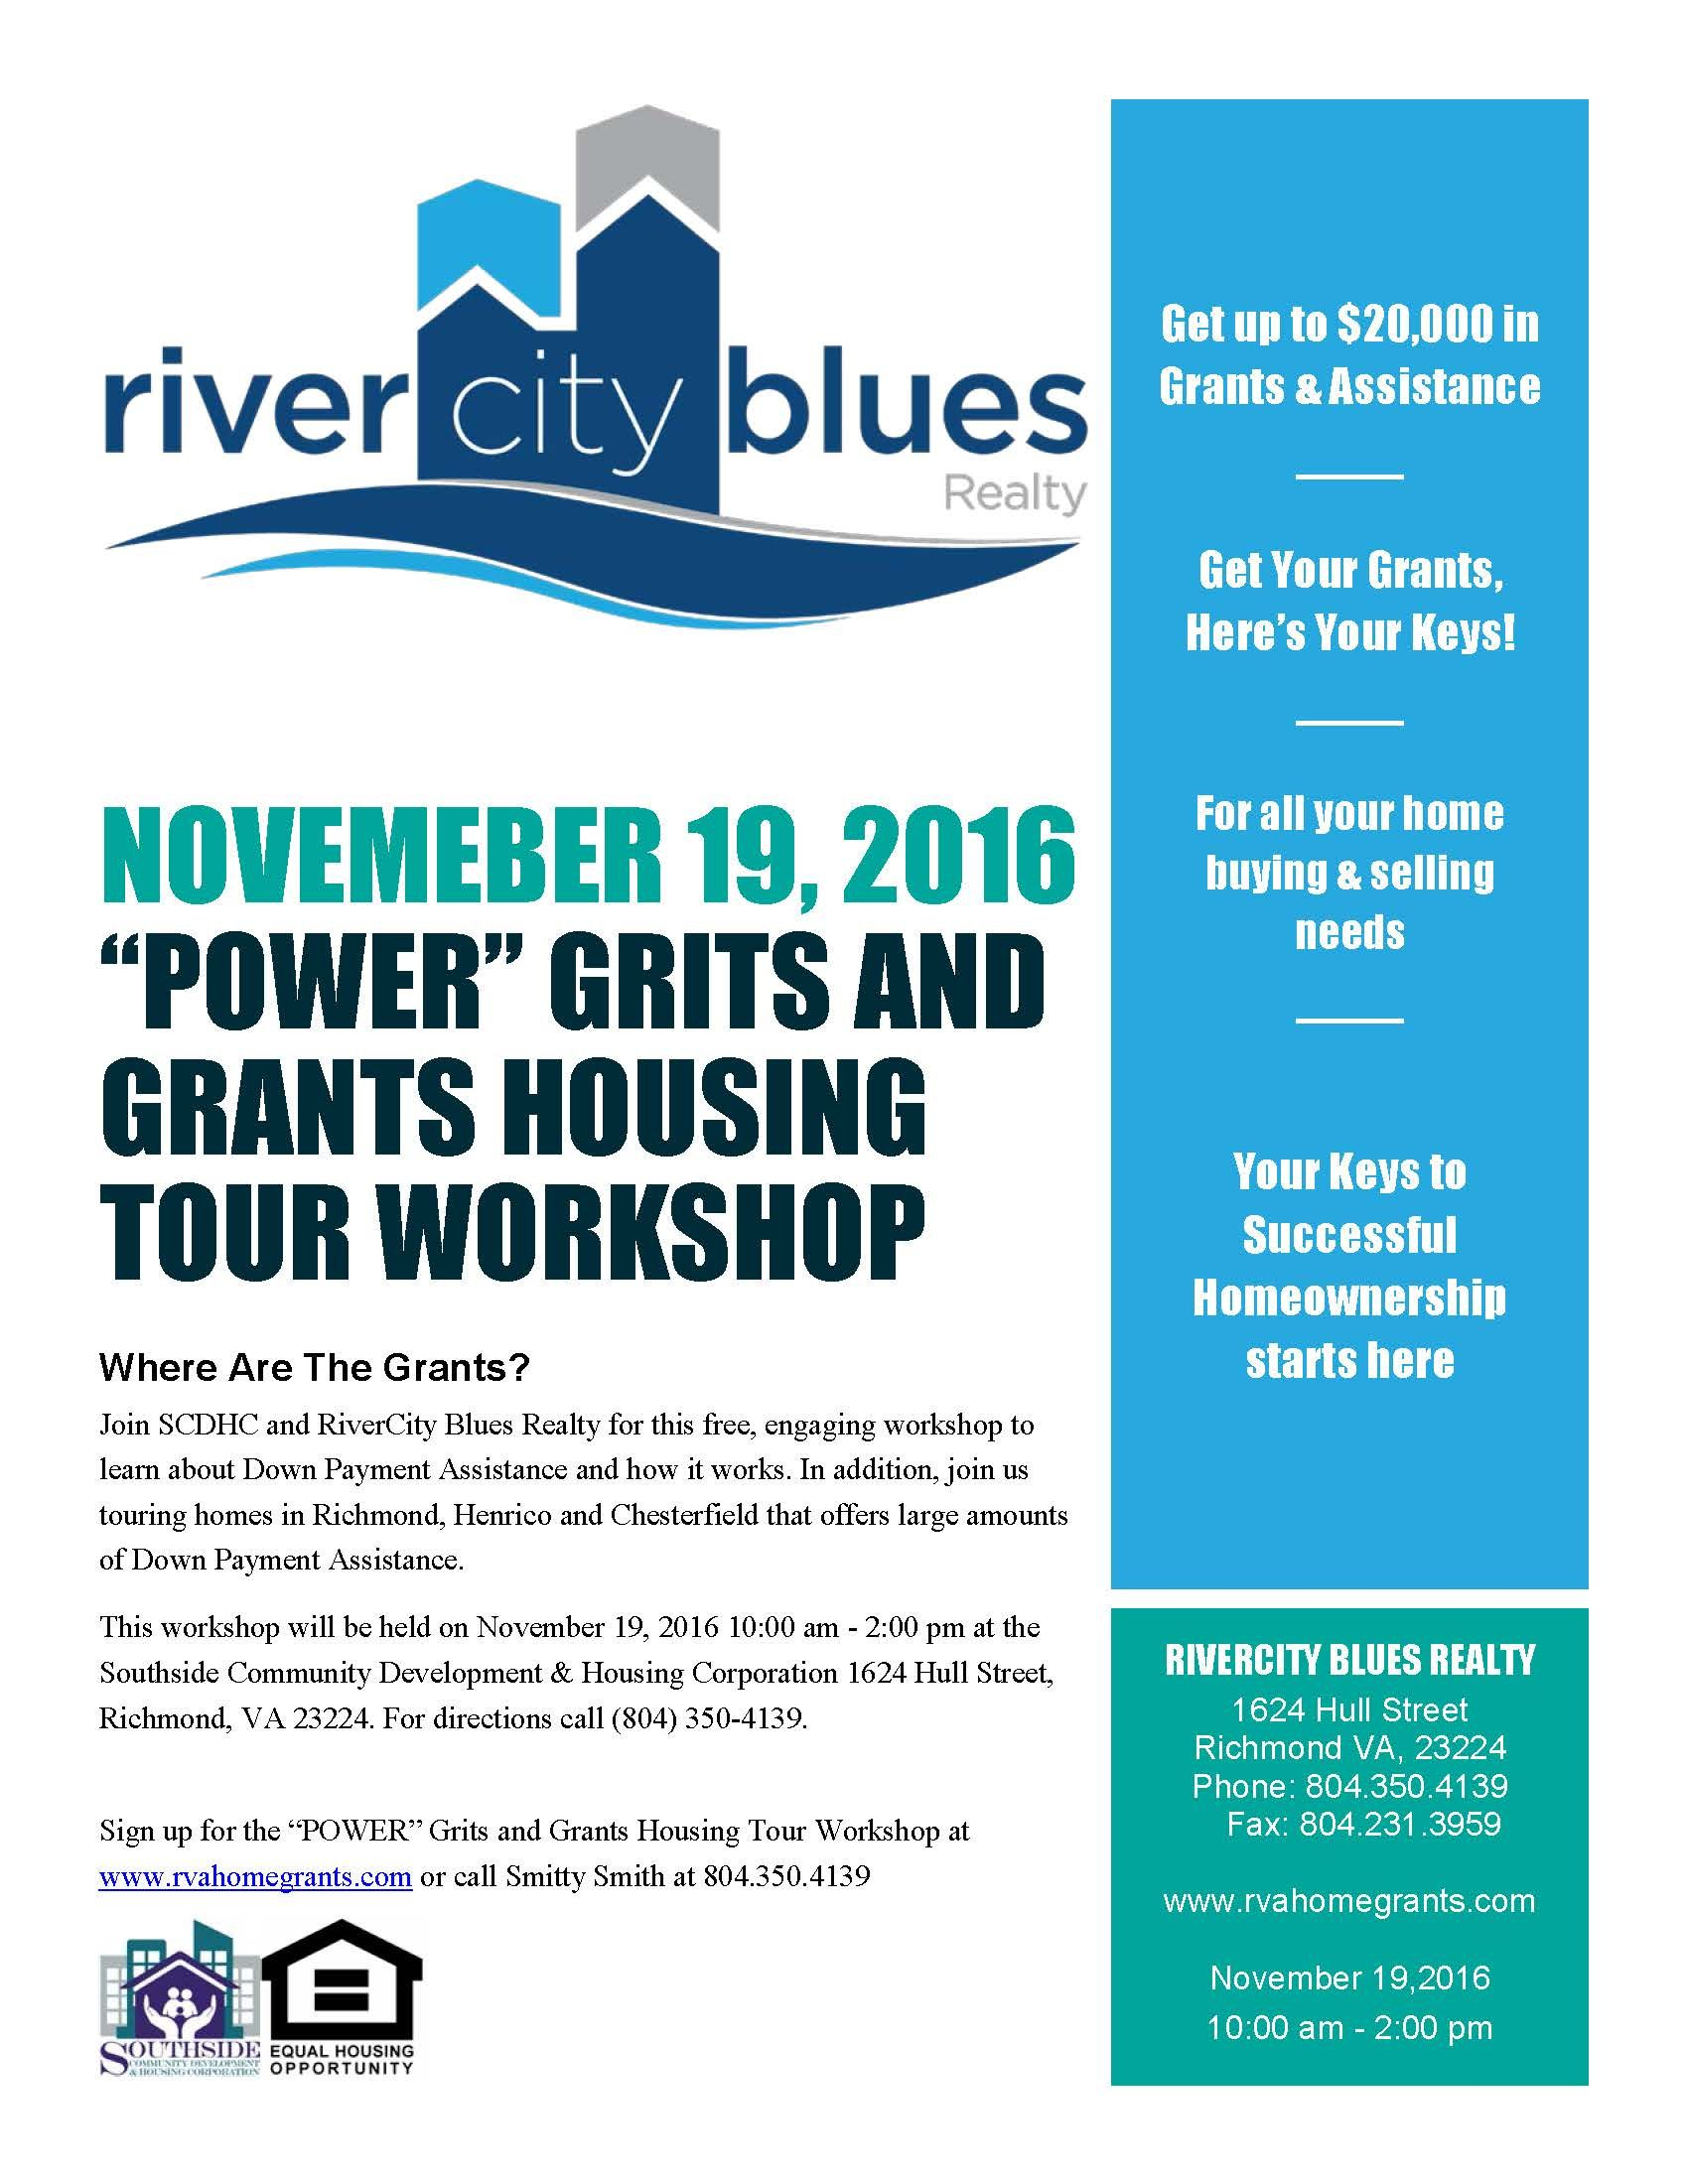 Down Payment Assistance Home Ownership Grant House Workshop